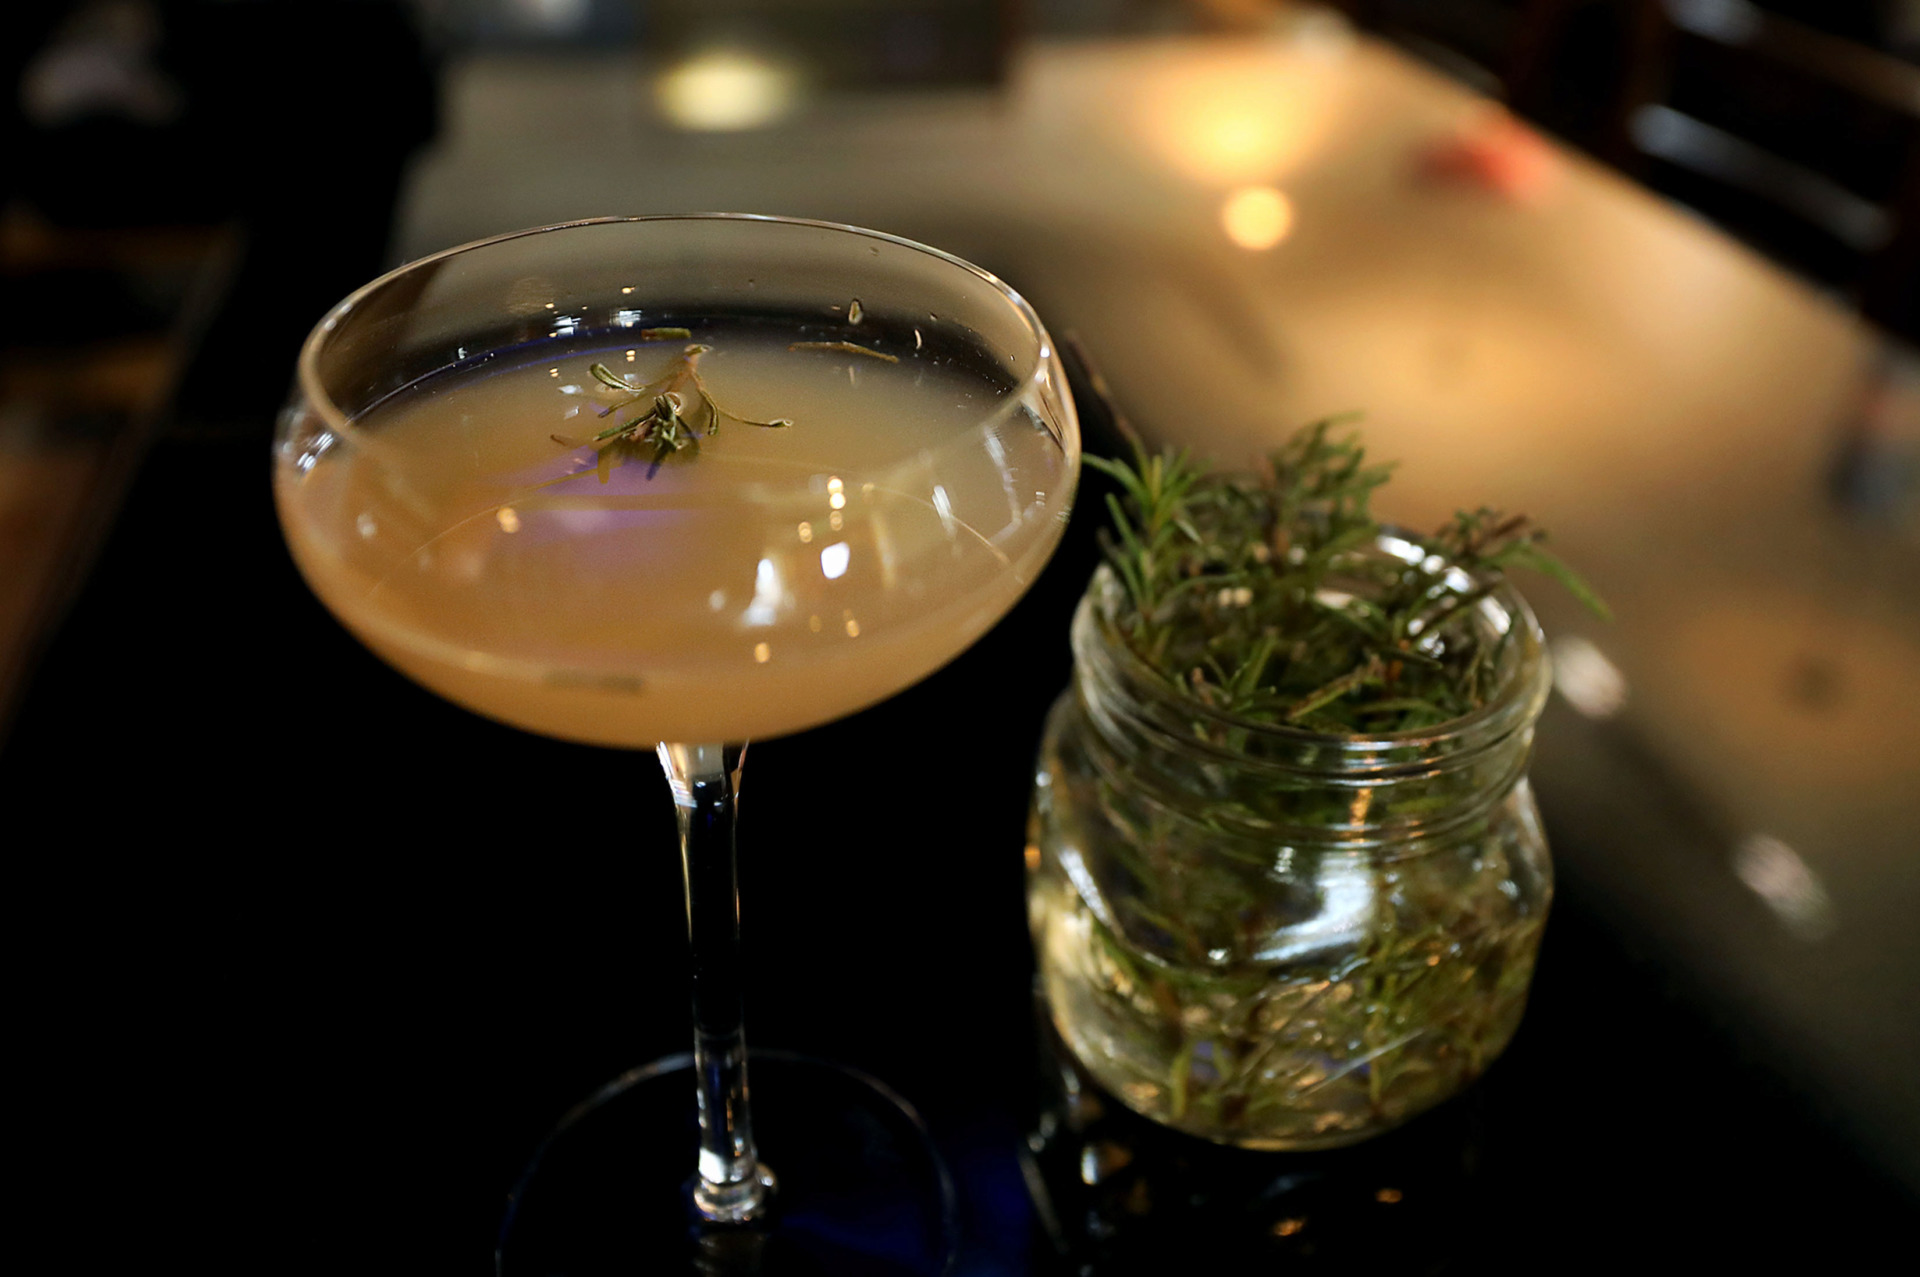 <strong>Rosemary&rsquo;s Gimlet, an herbaceous take on a classic cocktail made by Interim&rsquo;s Jeff Frisby, is this week's Bar Talk featured cocktail.</strong> (Patrick Lantrip/Daily Memphian)